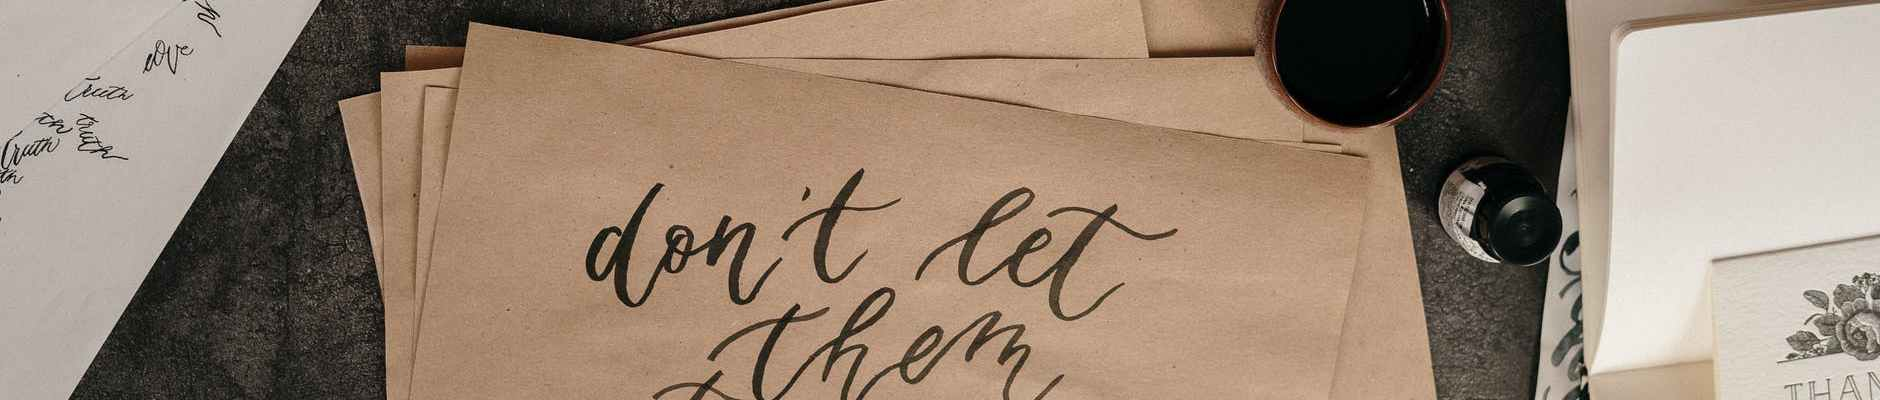 motivational statement written on brown envelope